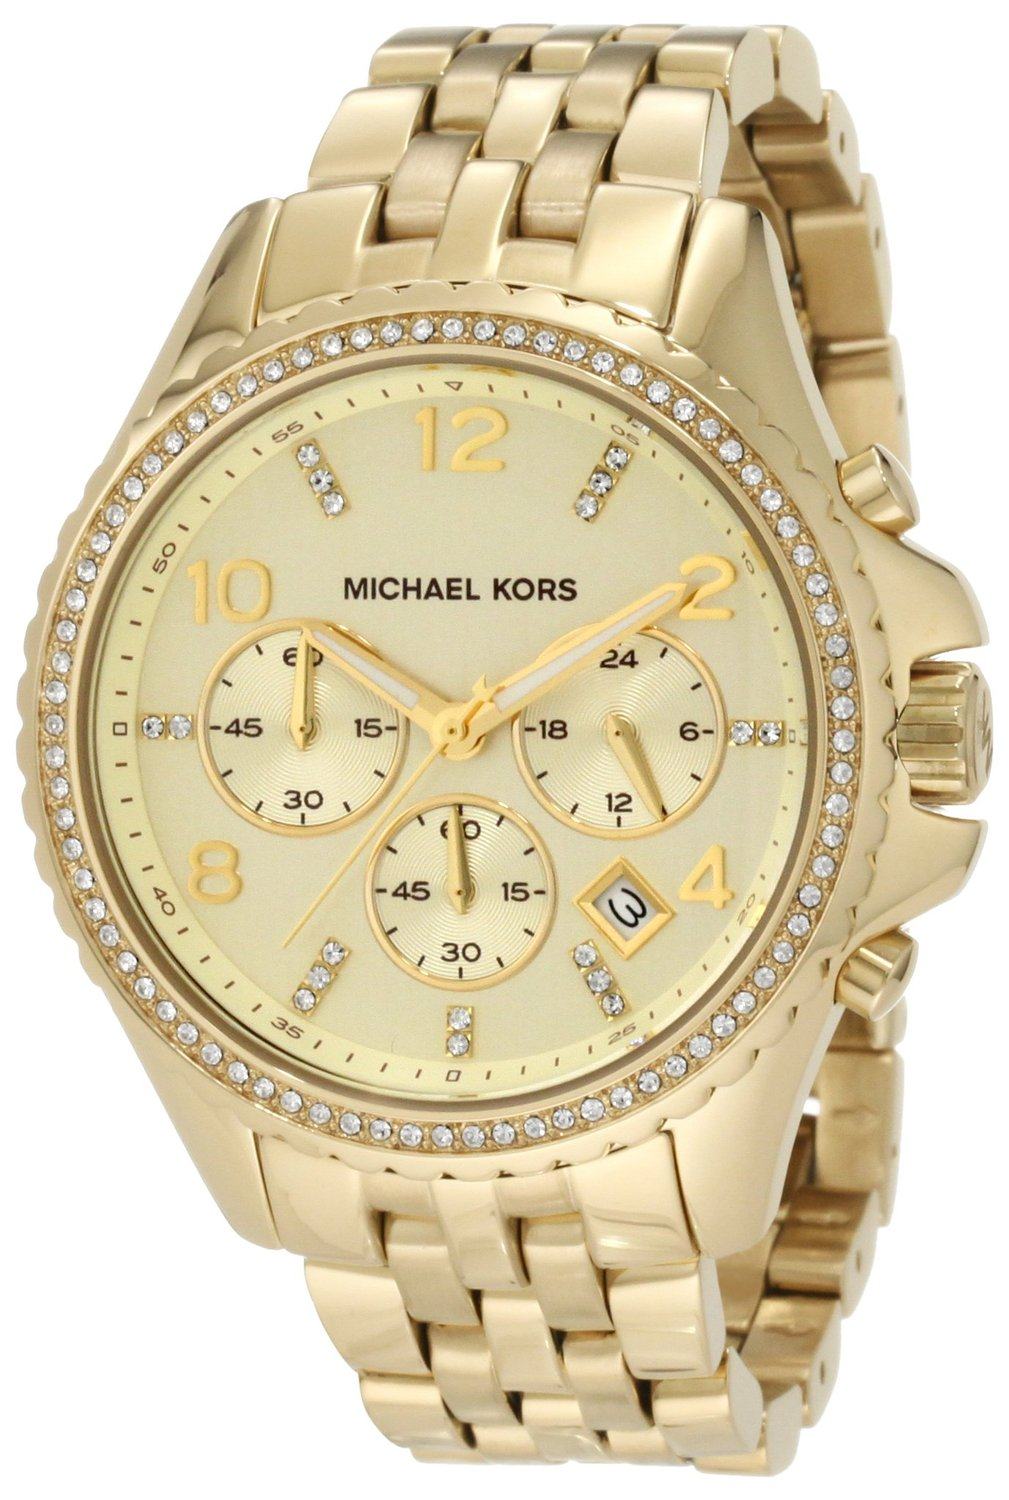 product ratings - Michael Kors Women's Parker Rose Gold-Tone Stainless Steel Bracelet Watch $ Trending at $ Trending price is based on prices over last 90 days.